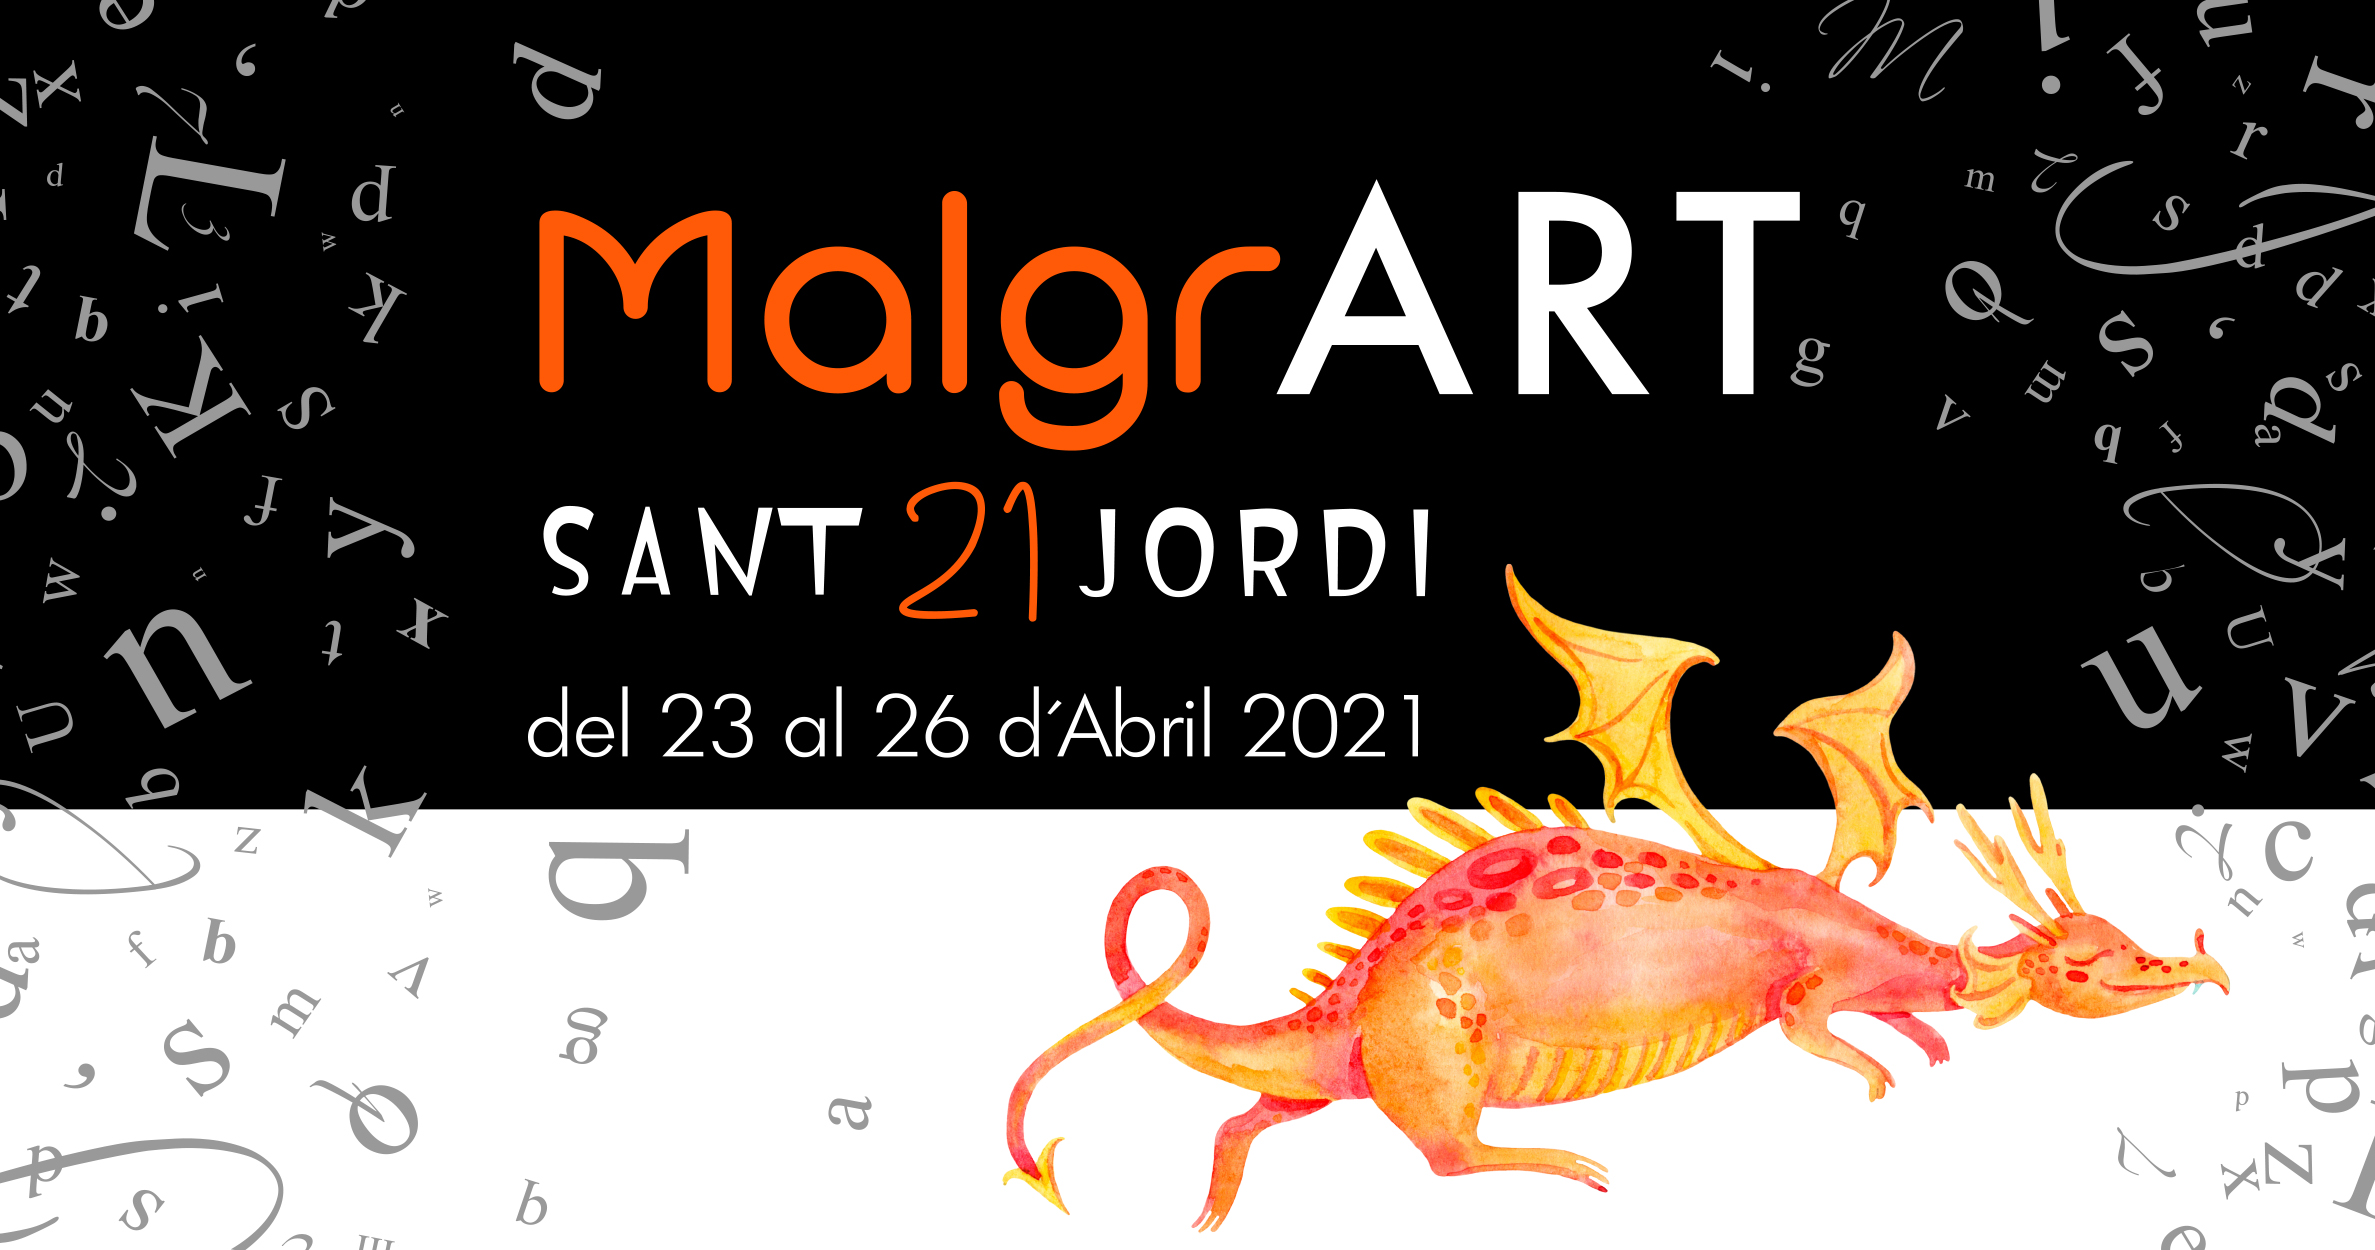 MalgrART 2021: Cant Coral